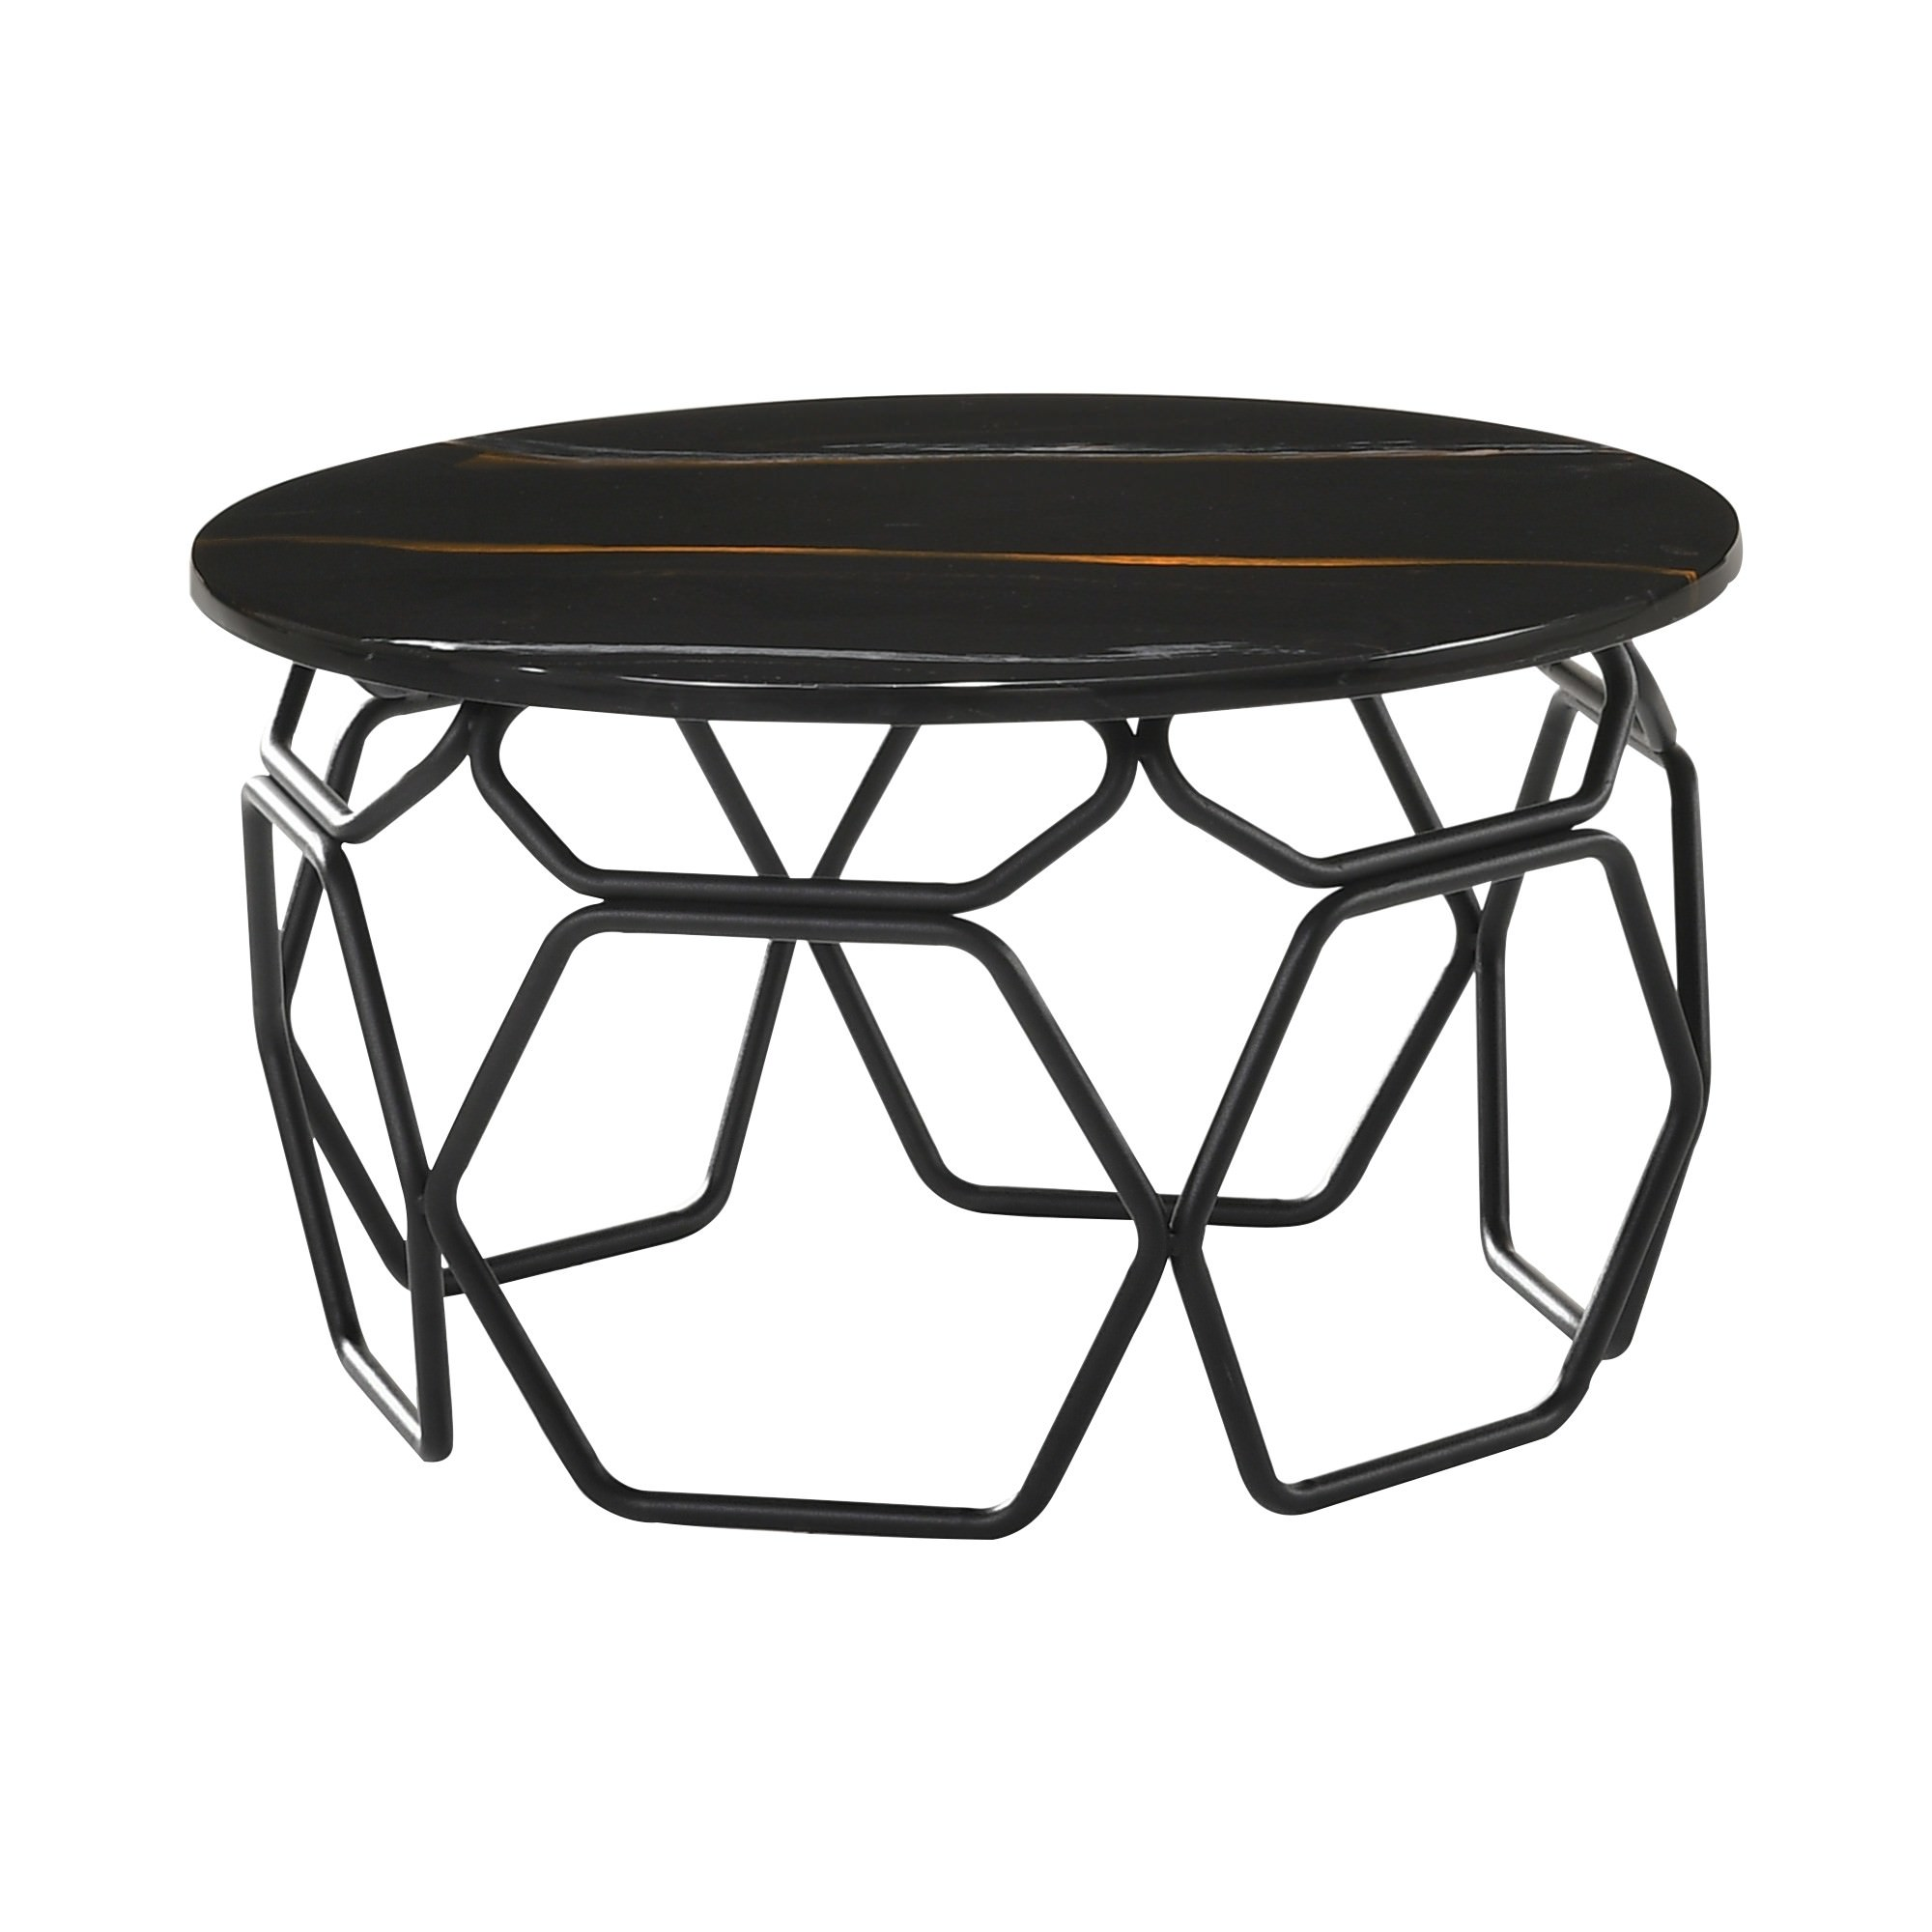 Linza Engineered Marble Topped Metal Round Side Table